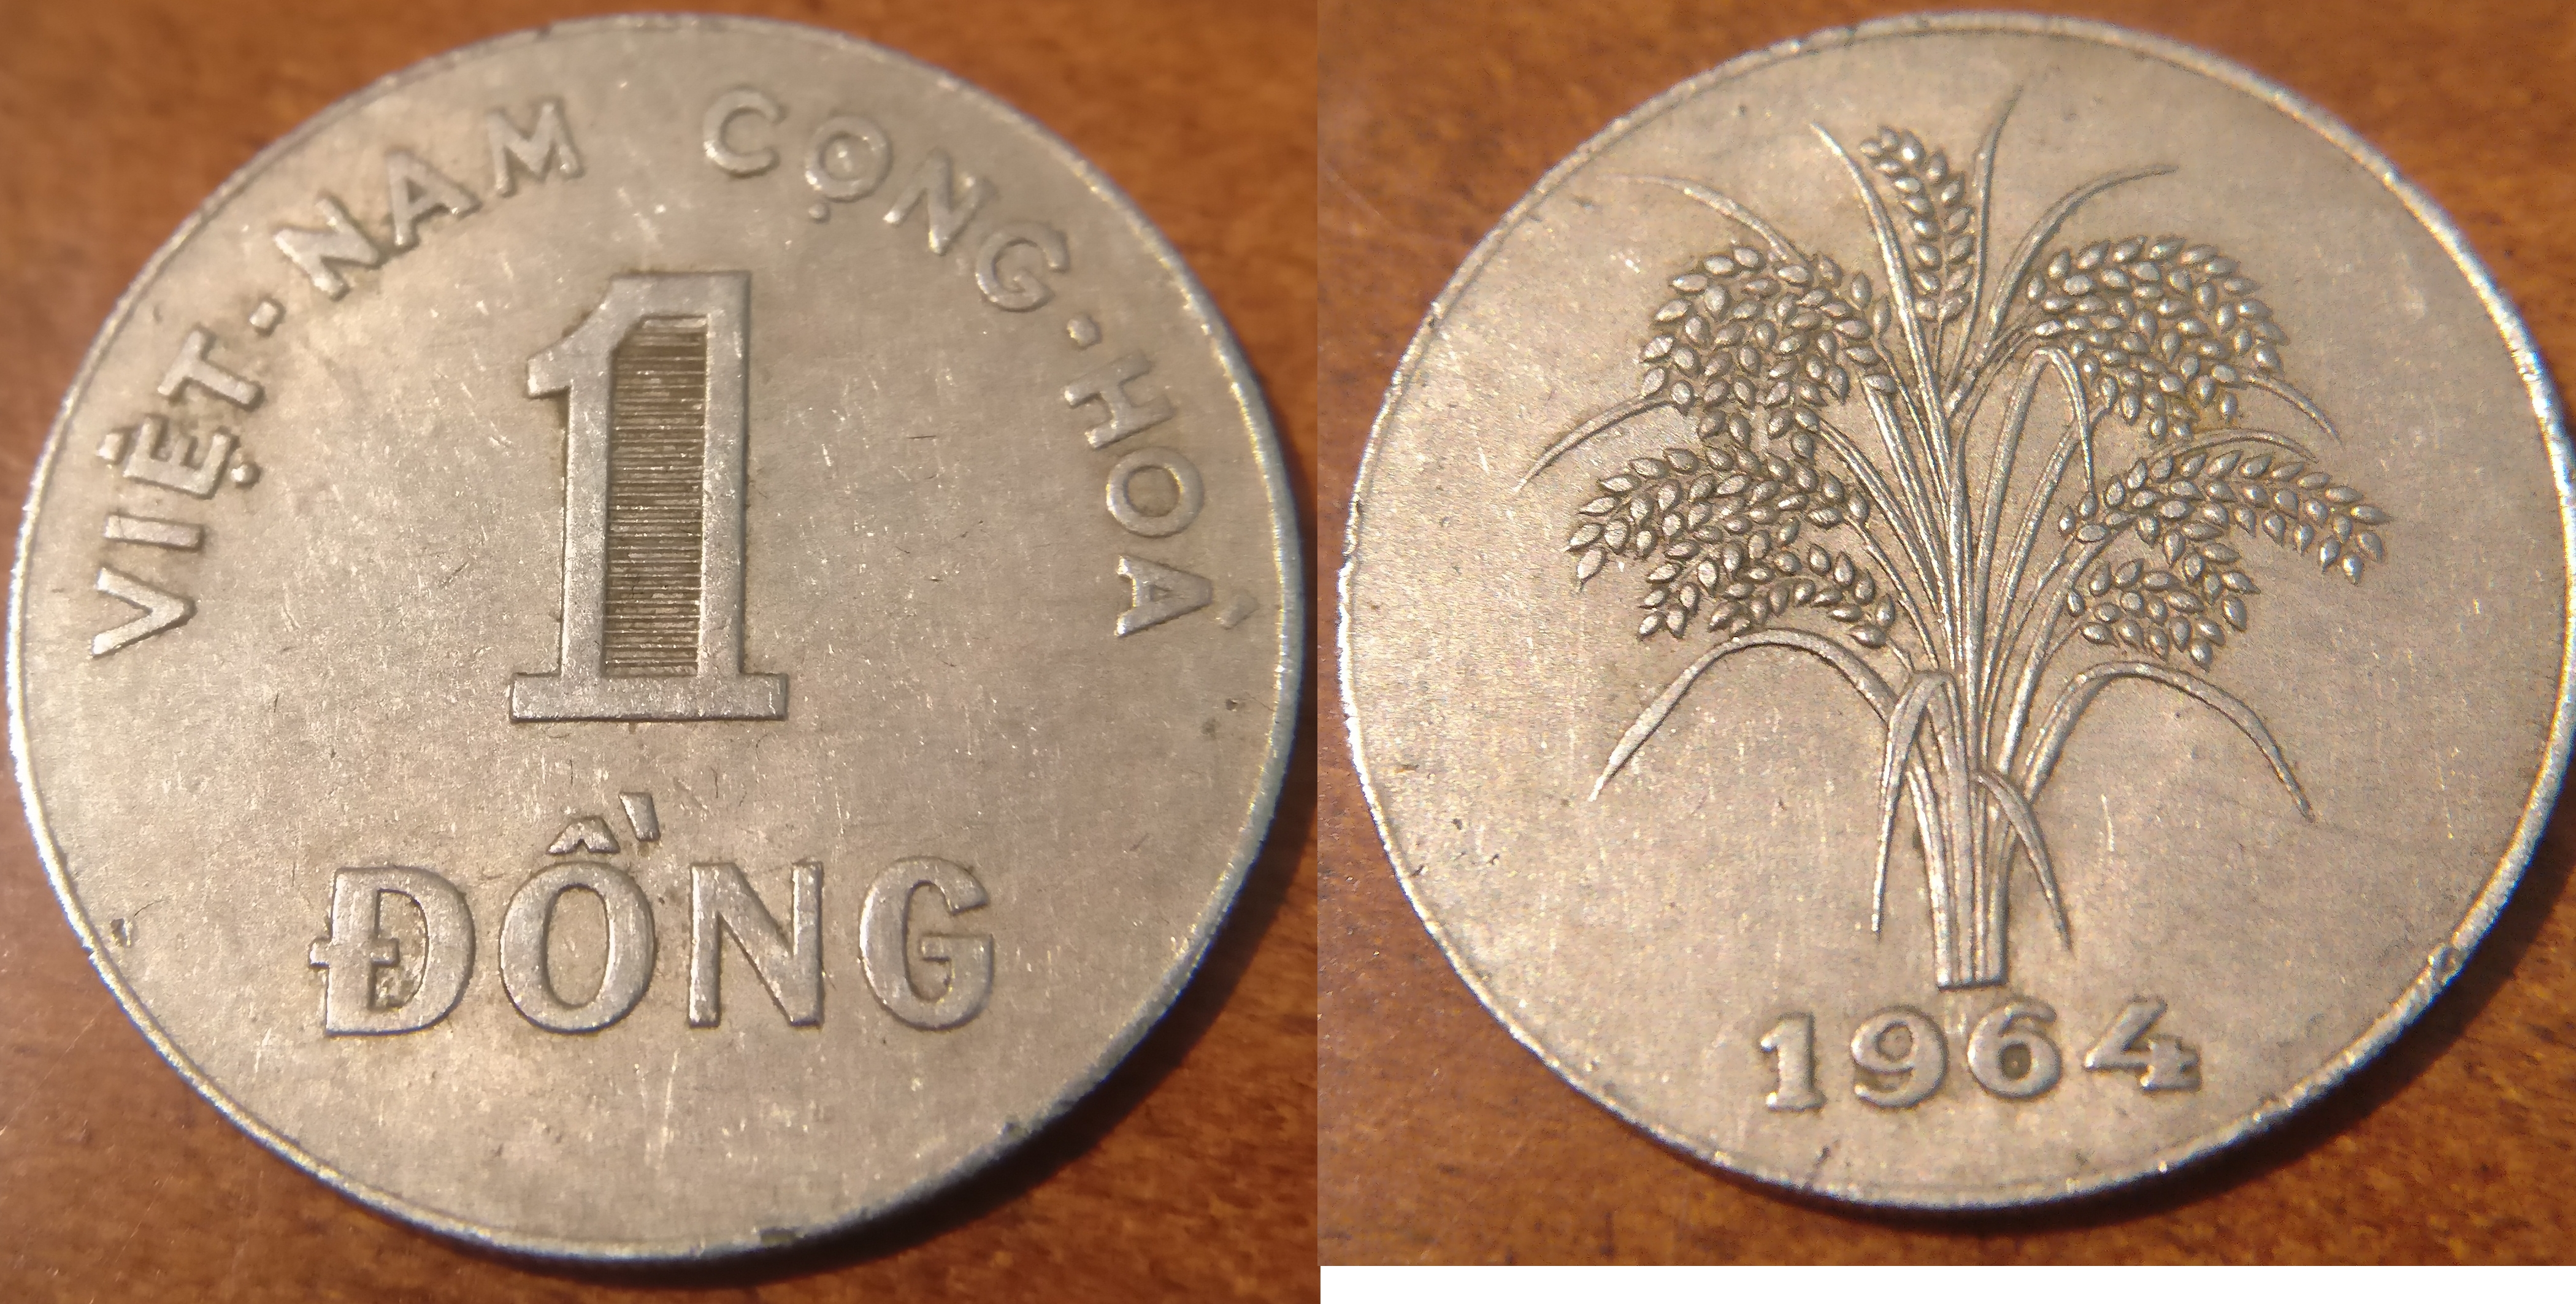 A South Vietnamese 1 đồng Coin From 1964